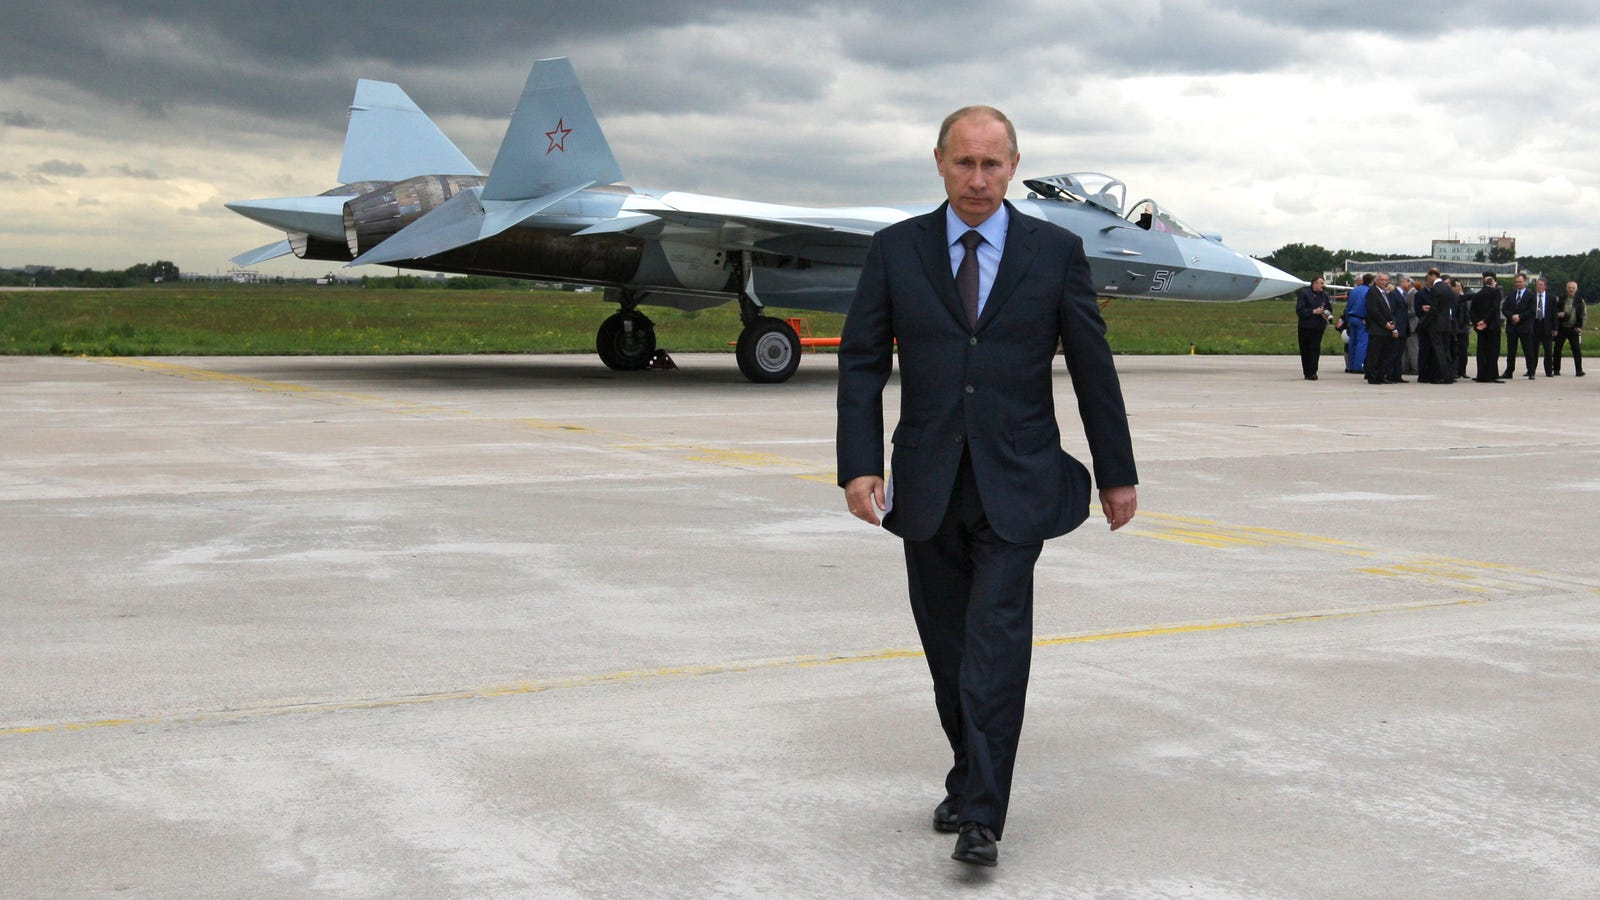 Russia Can't Afford To Buy Its New Super Weapons